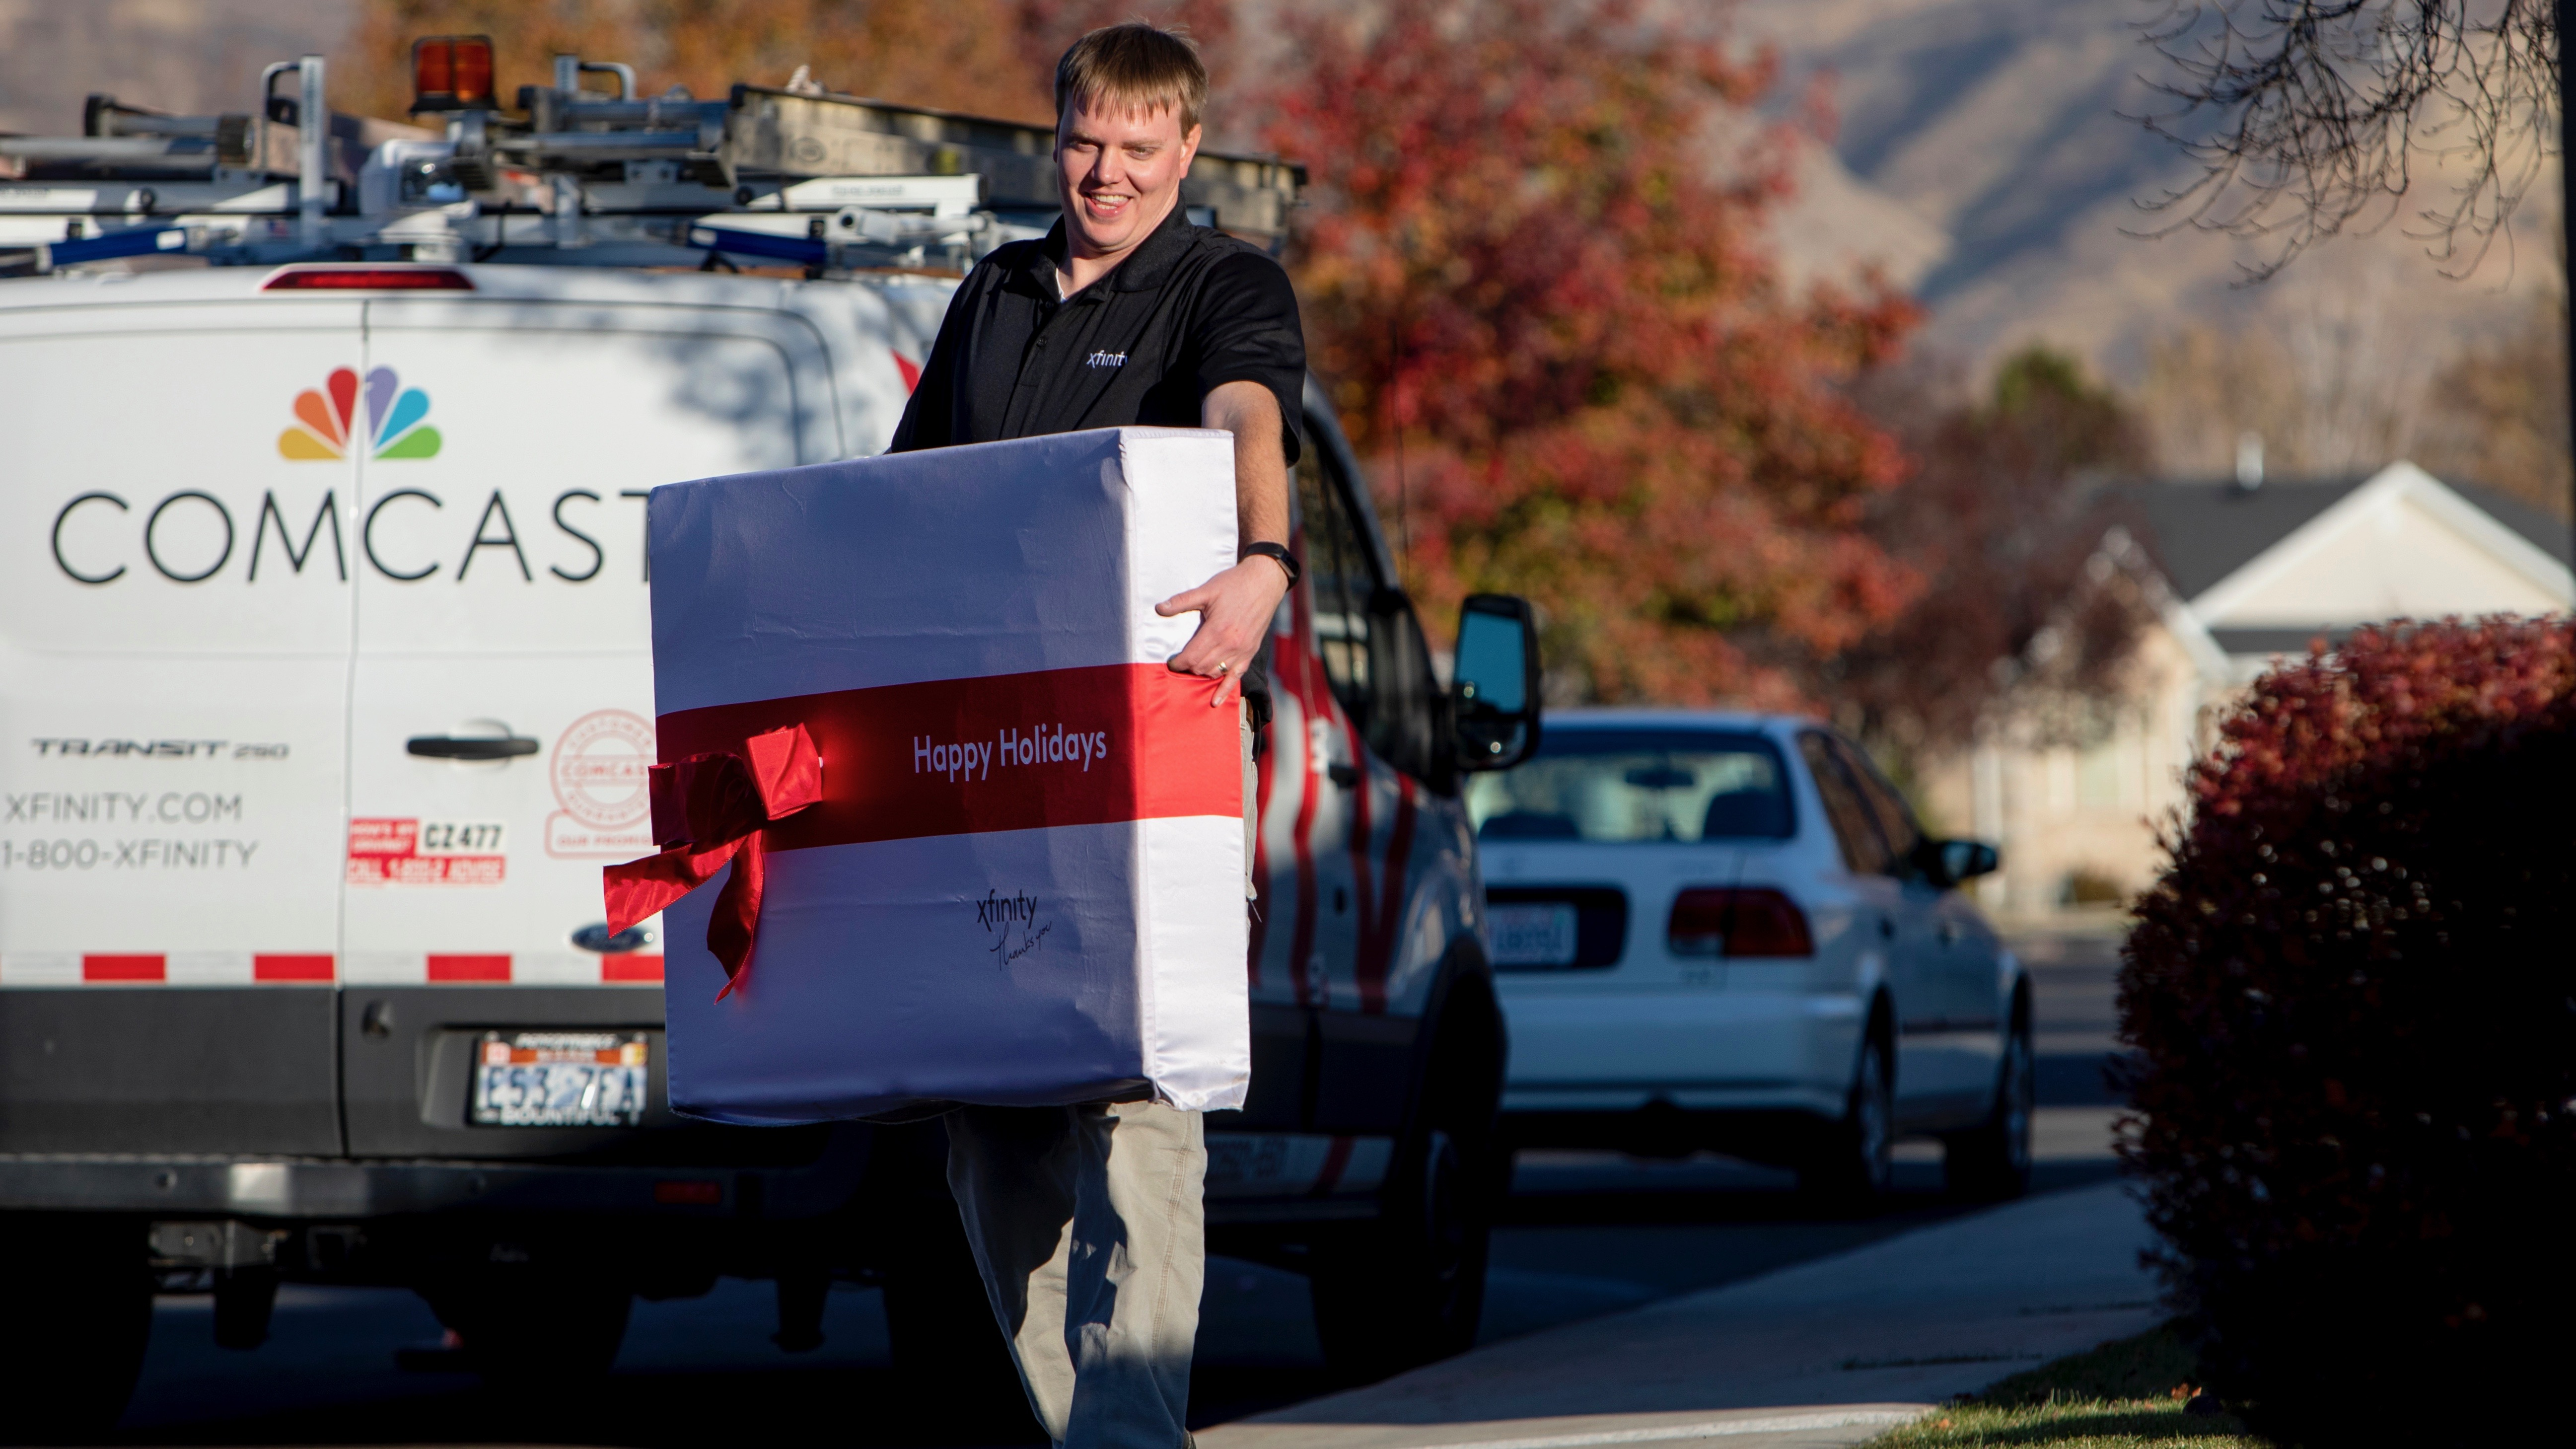 An Xfinity employee carries a large gift box.